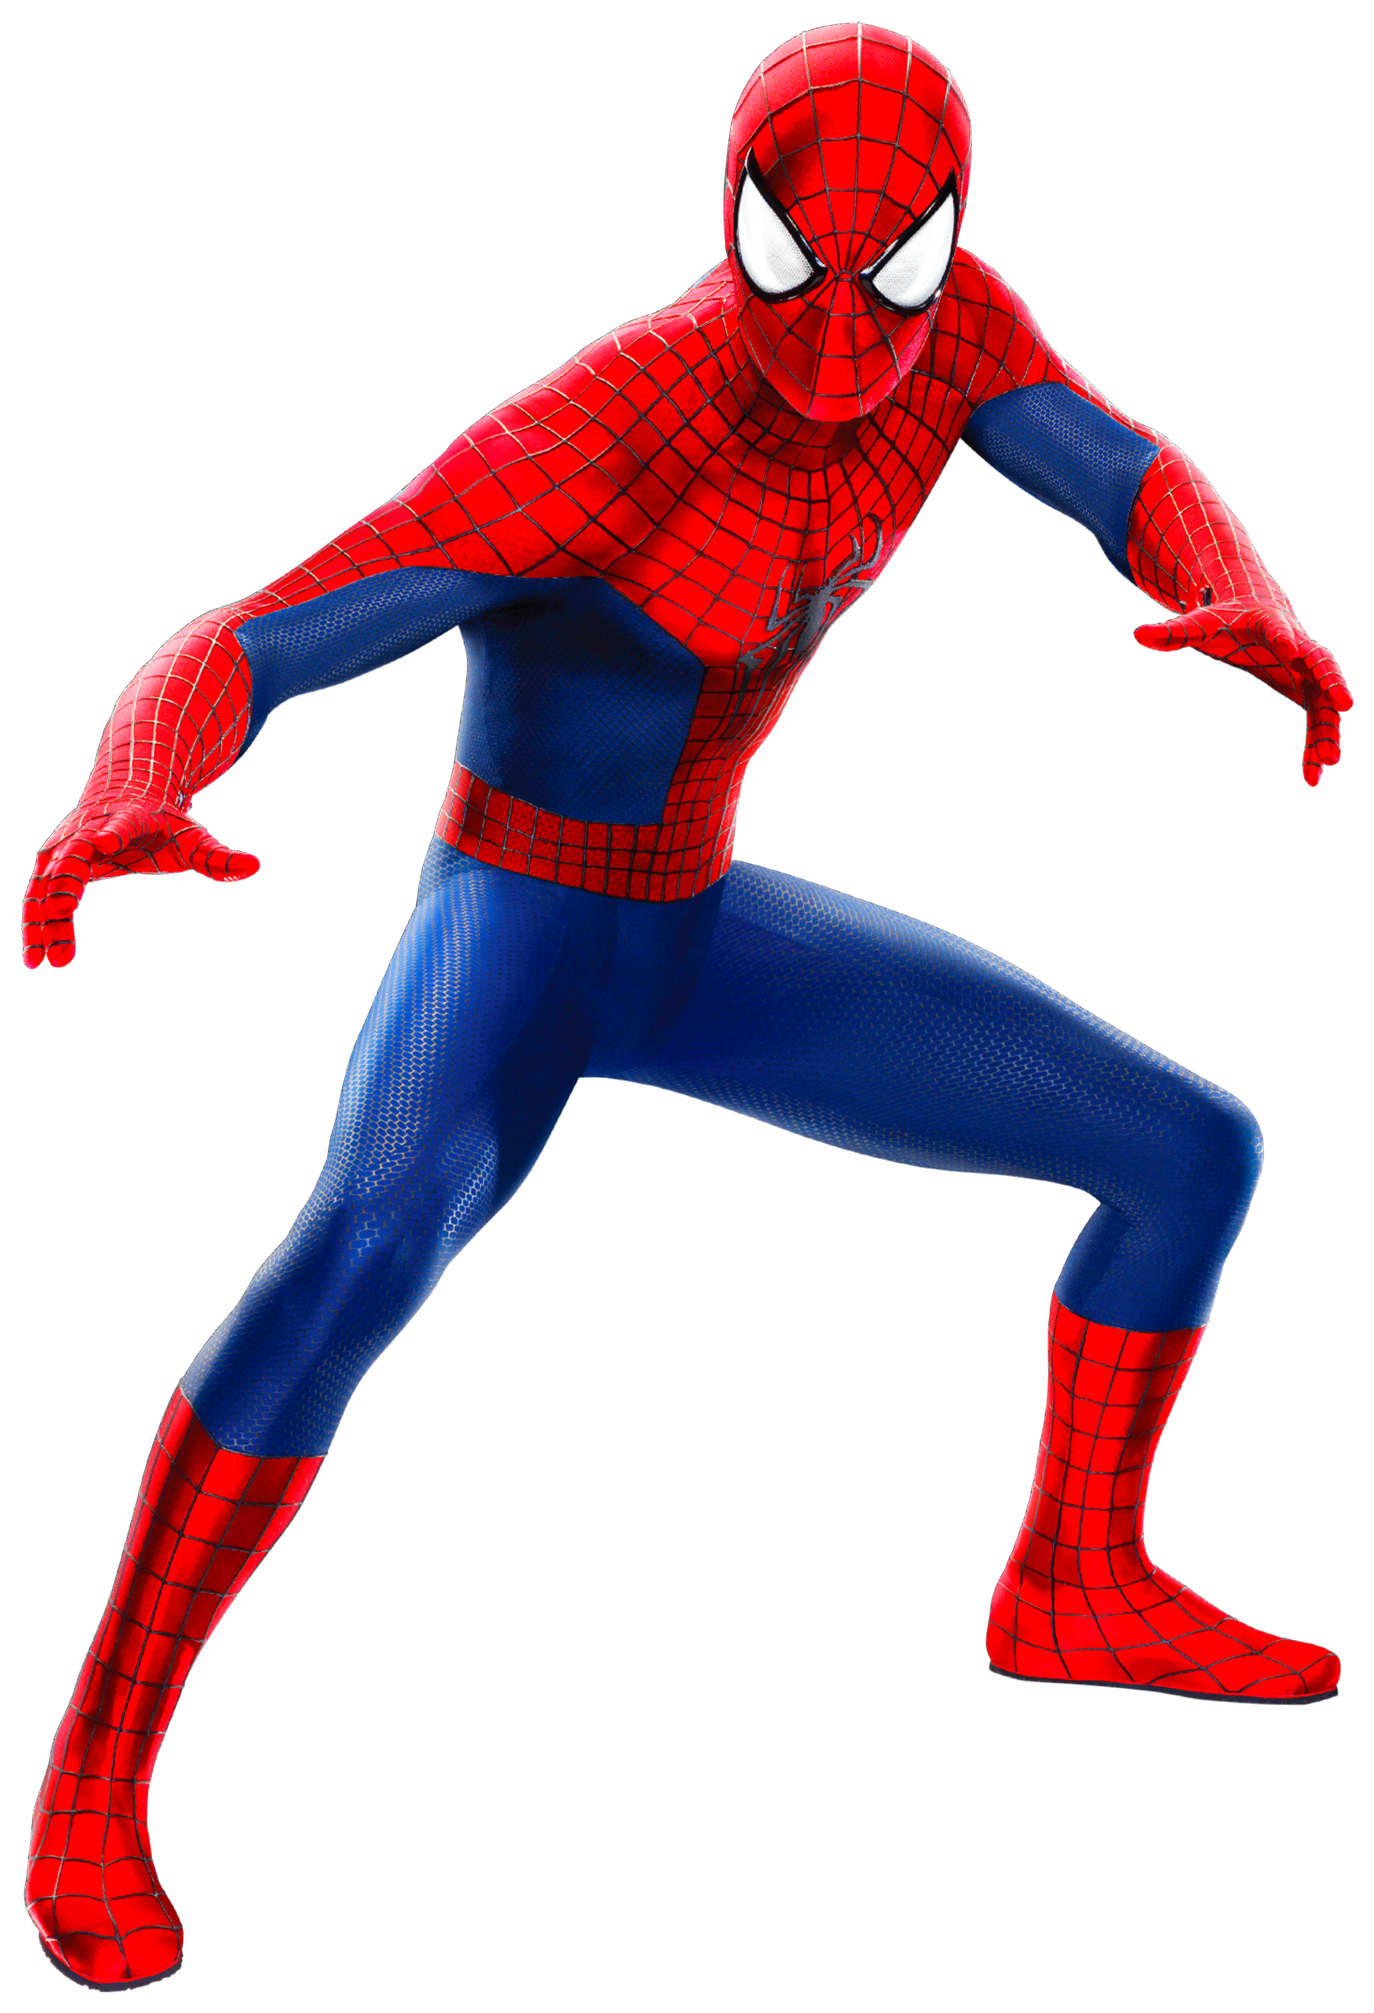 Spiderman upside down png. The amazing spider man